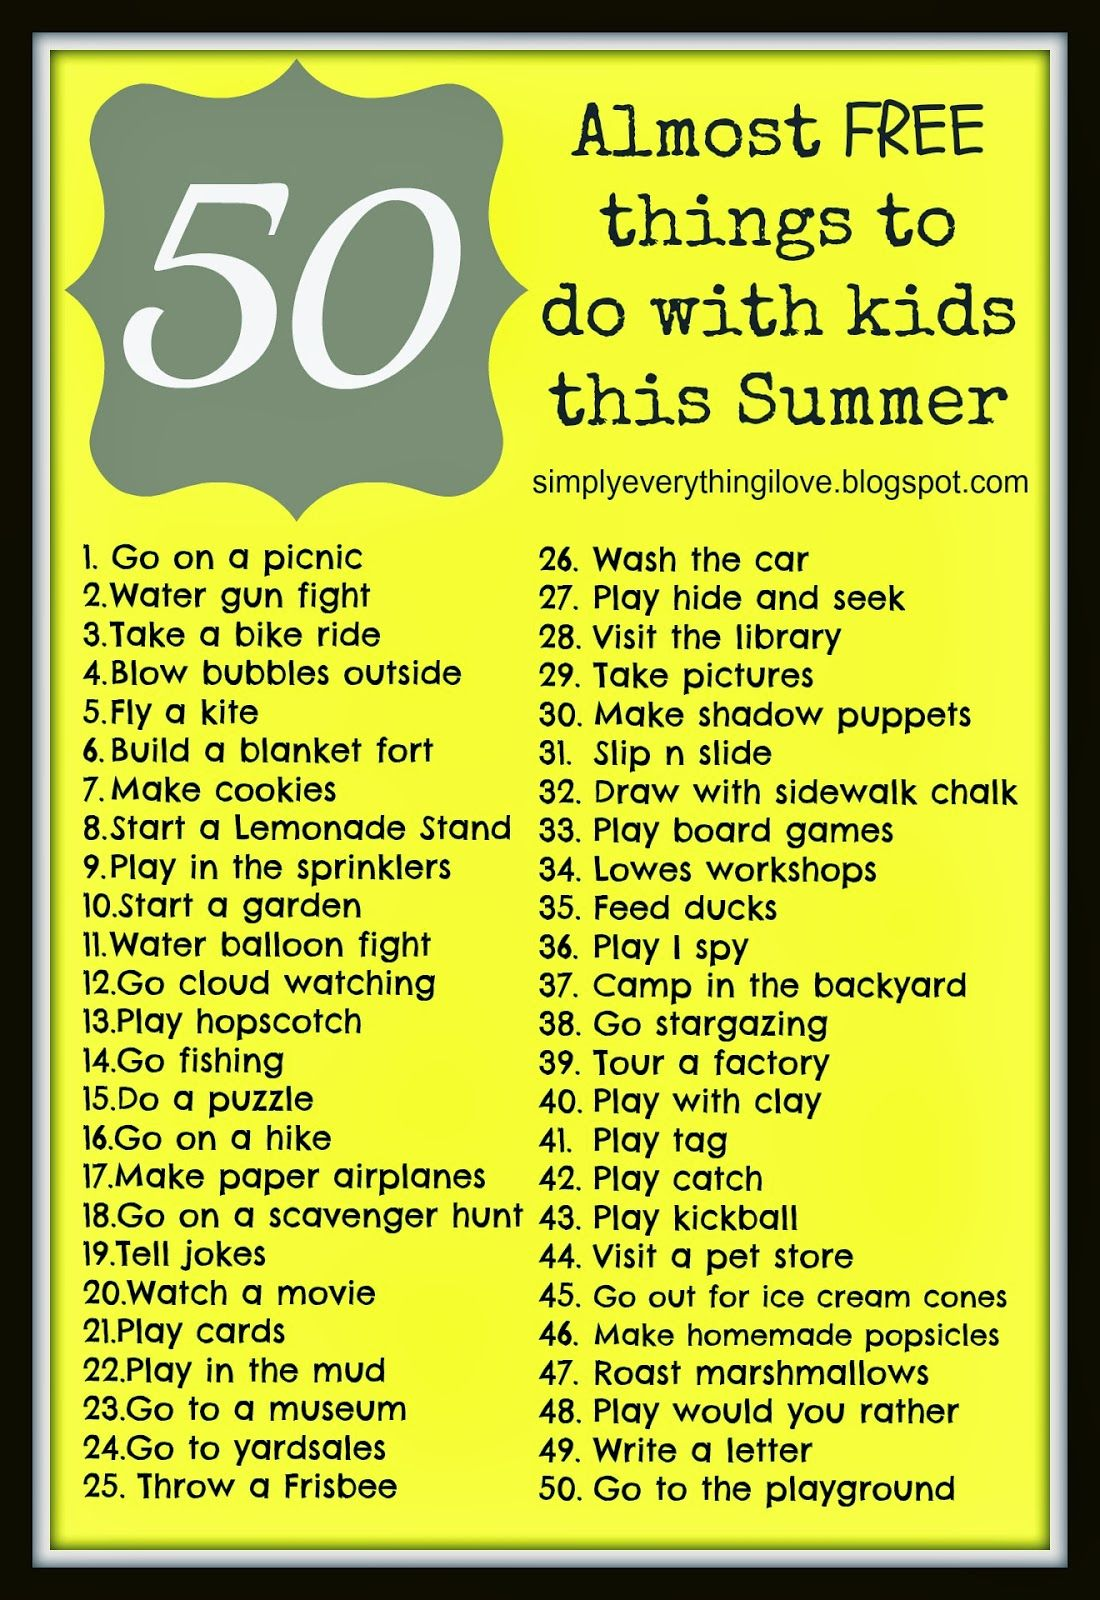 50 almost free things to do with kids this summer summer